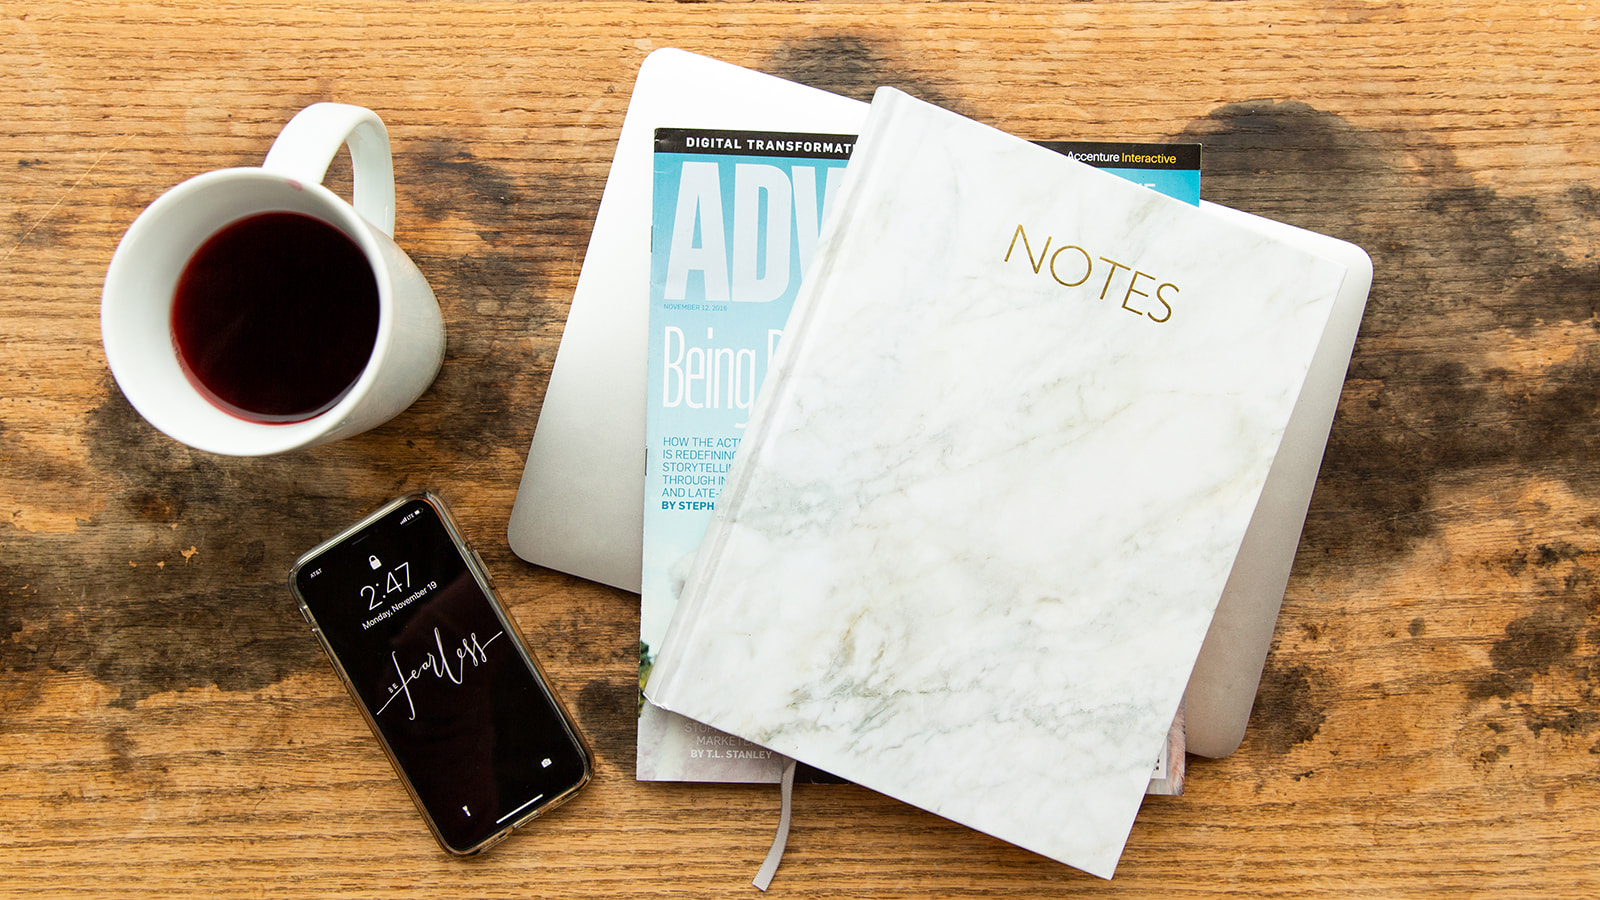 Image of notepad, Adweek magazine, an iPhone and a cup of tea from Cleveland Tea Revival.